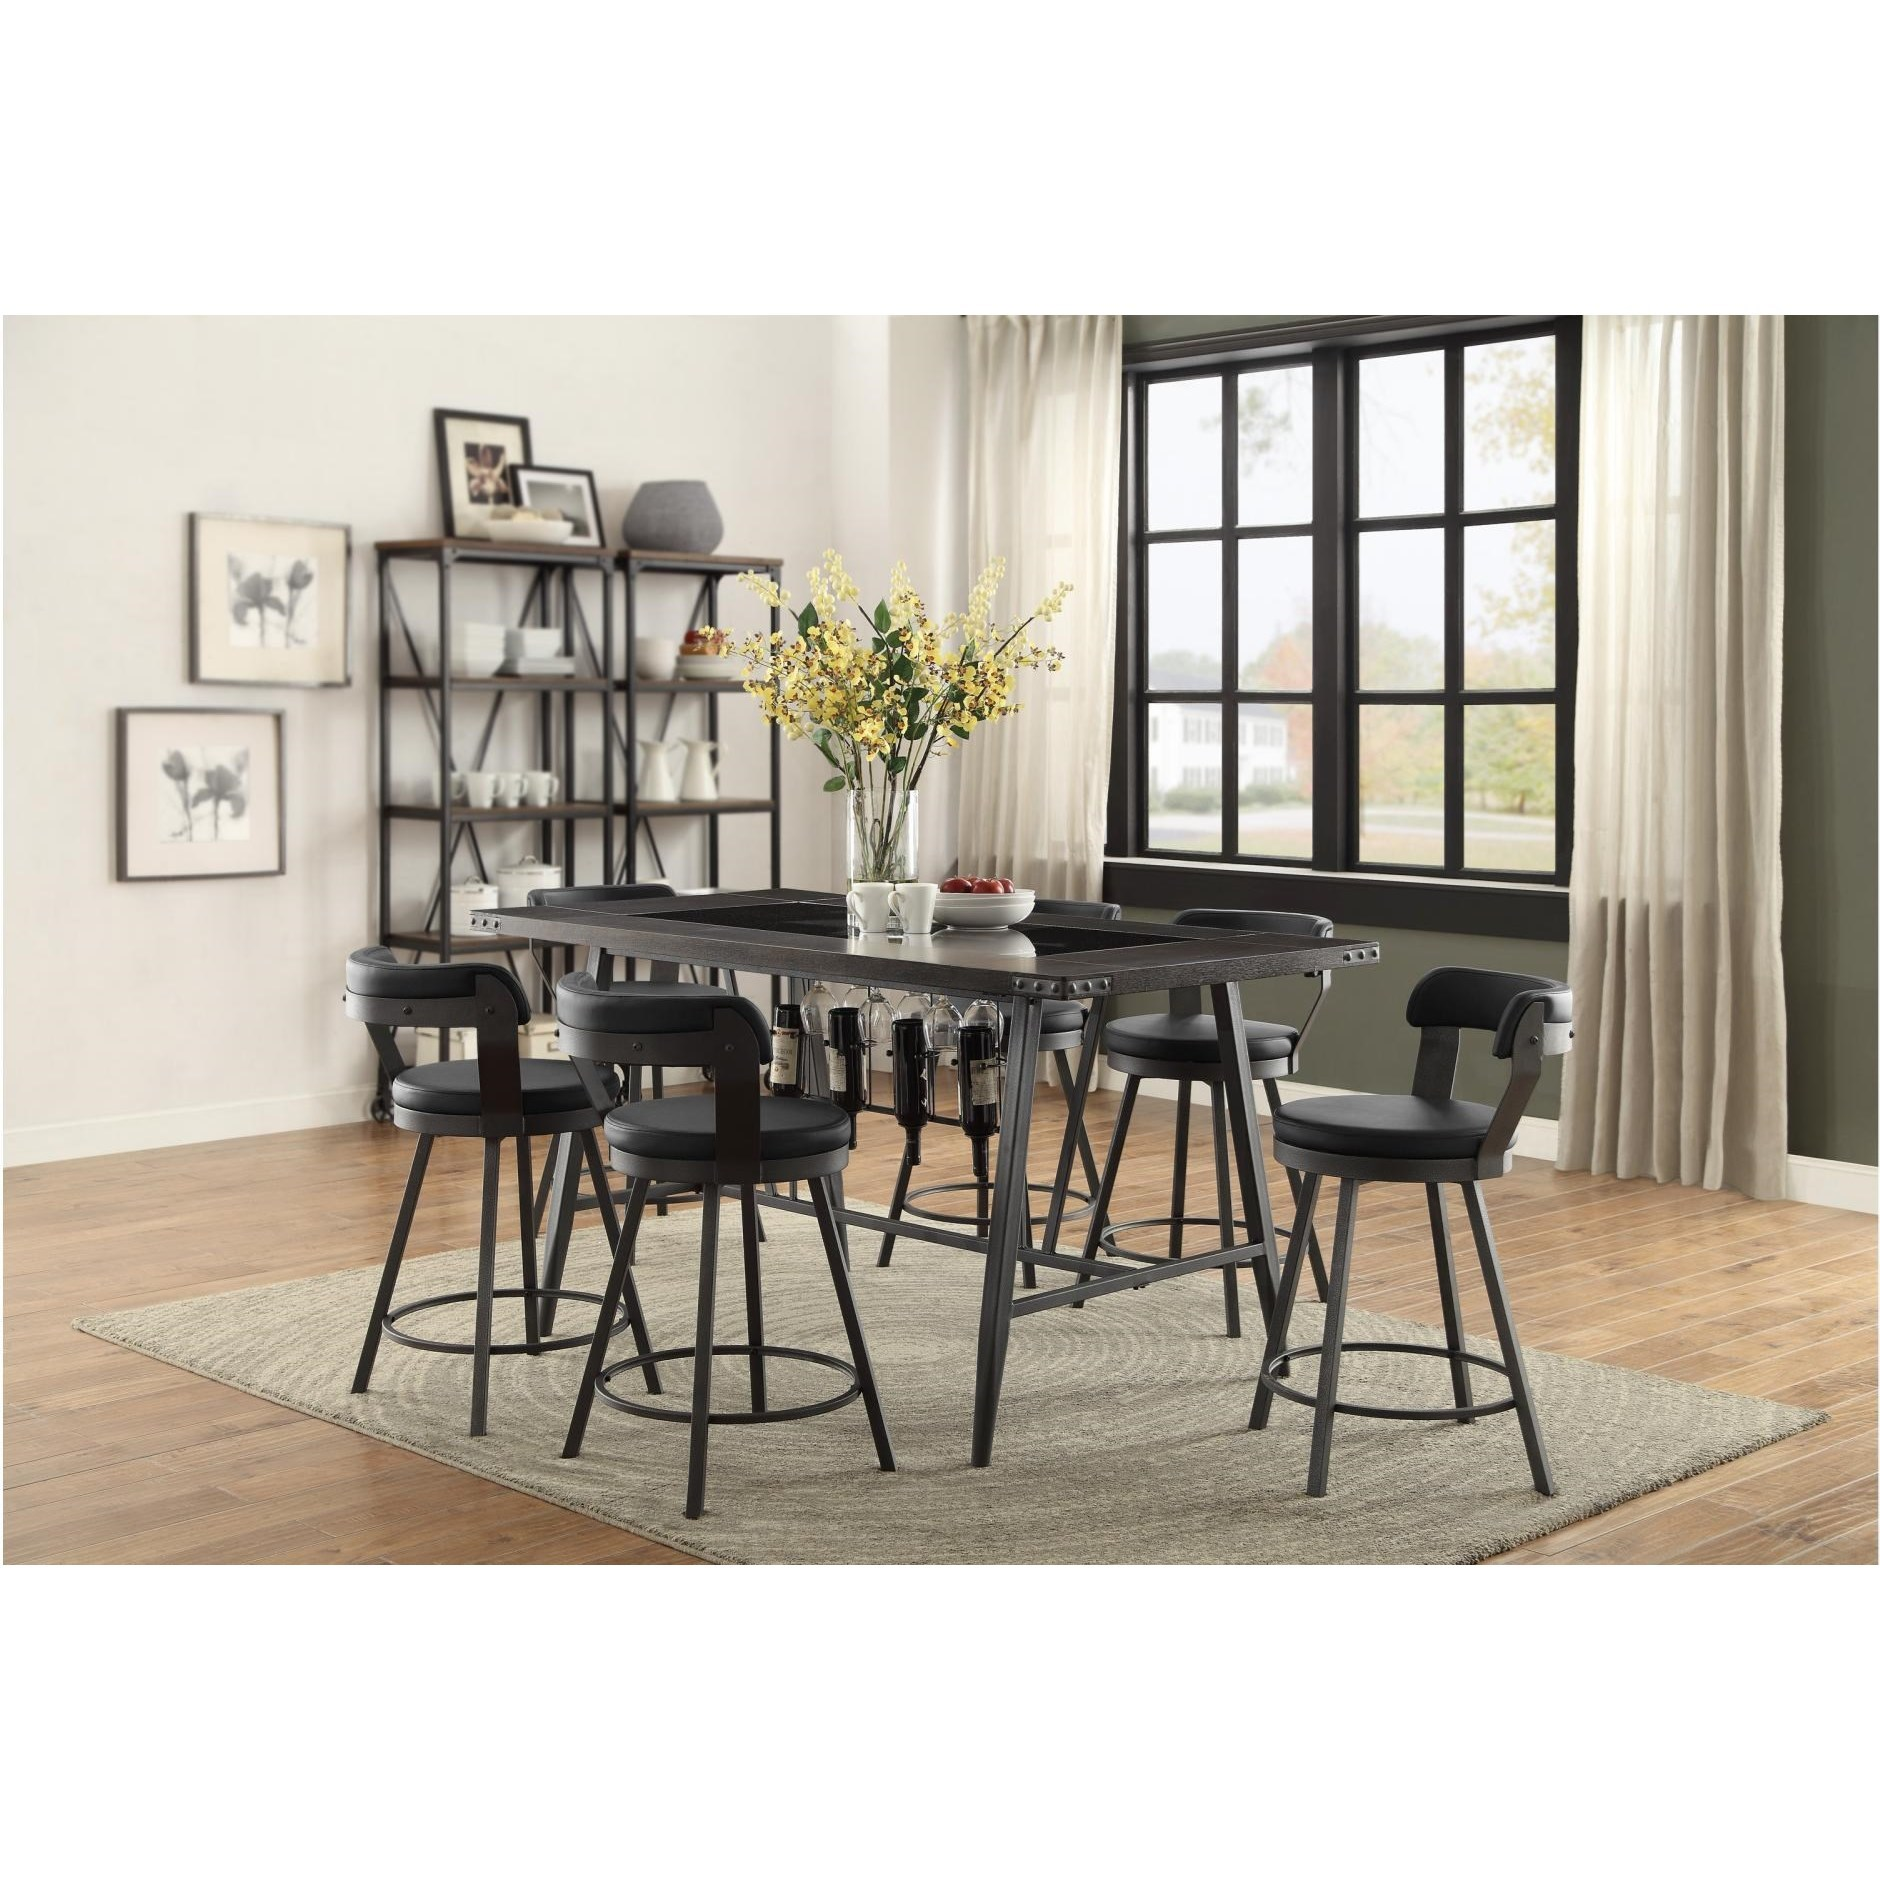 Appert 7 Piece Dining Set by Homelegance at Rife's Home Furniture